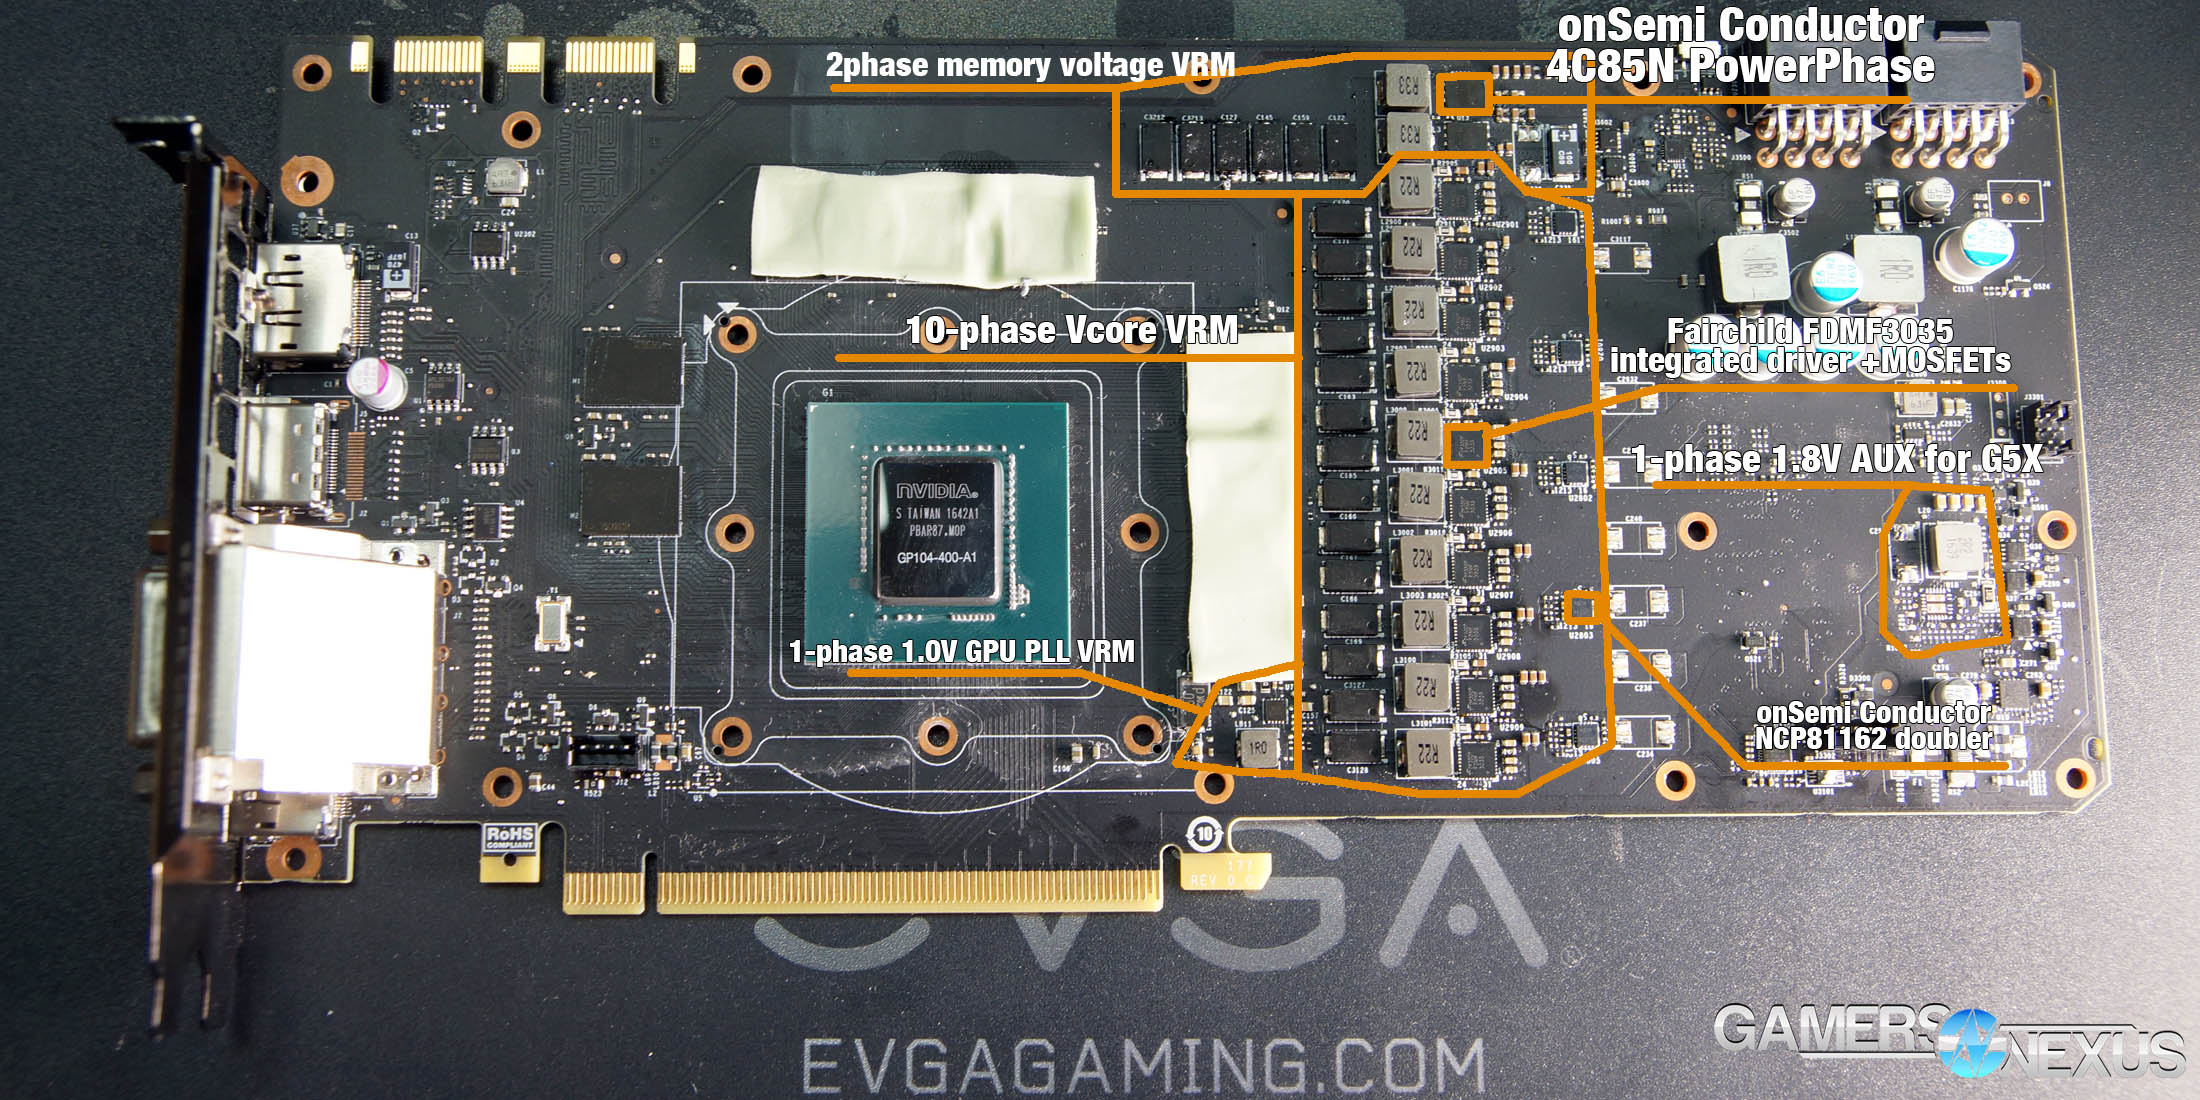 EVGA GTX 1080 FTW2 & SC2 ICX Review - Exhaustive Thermal